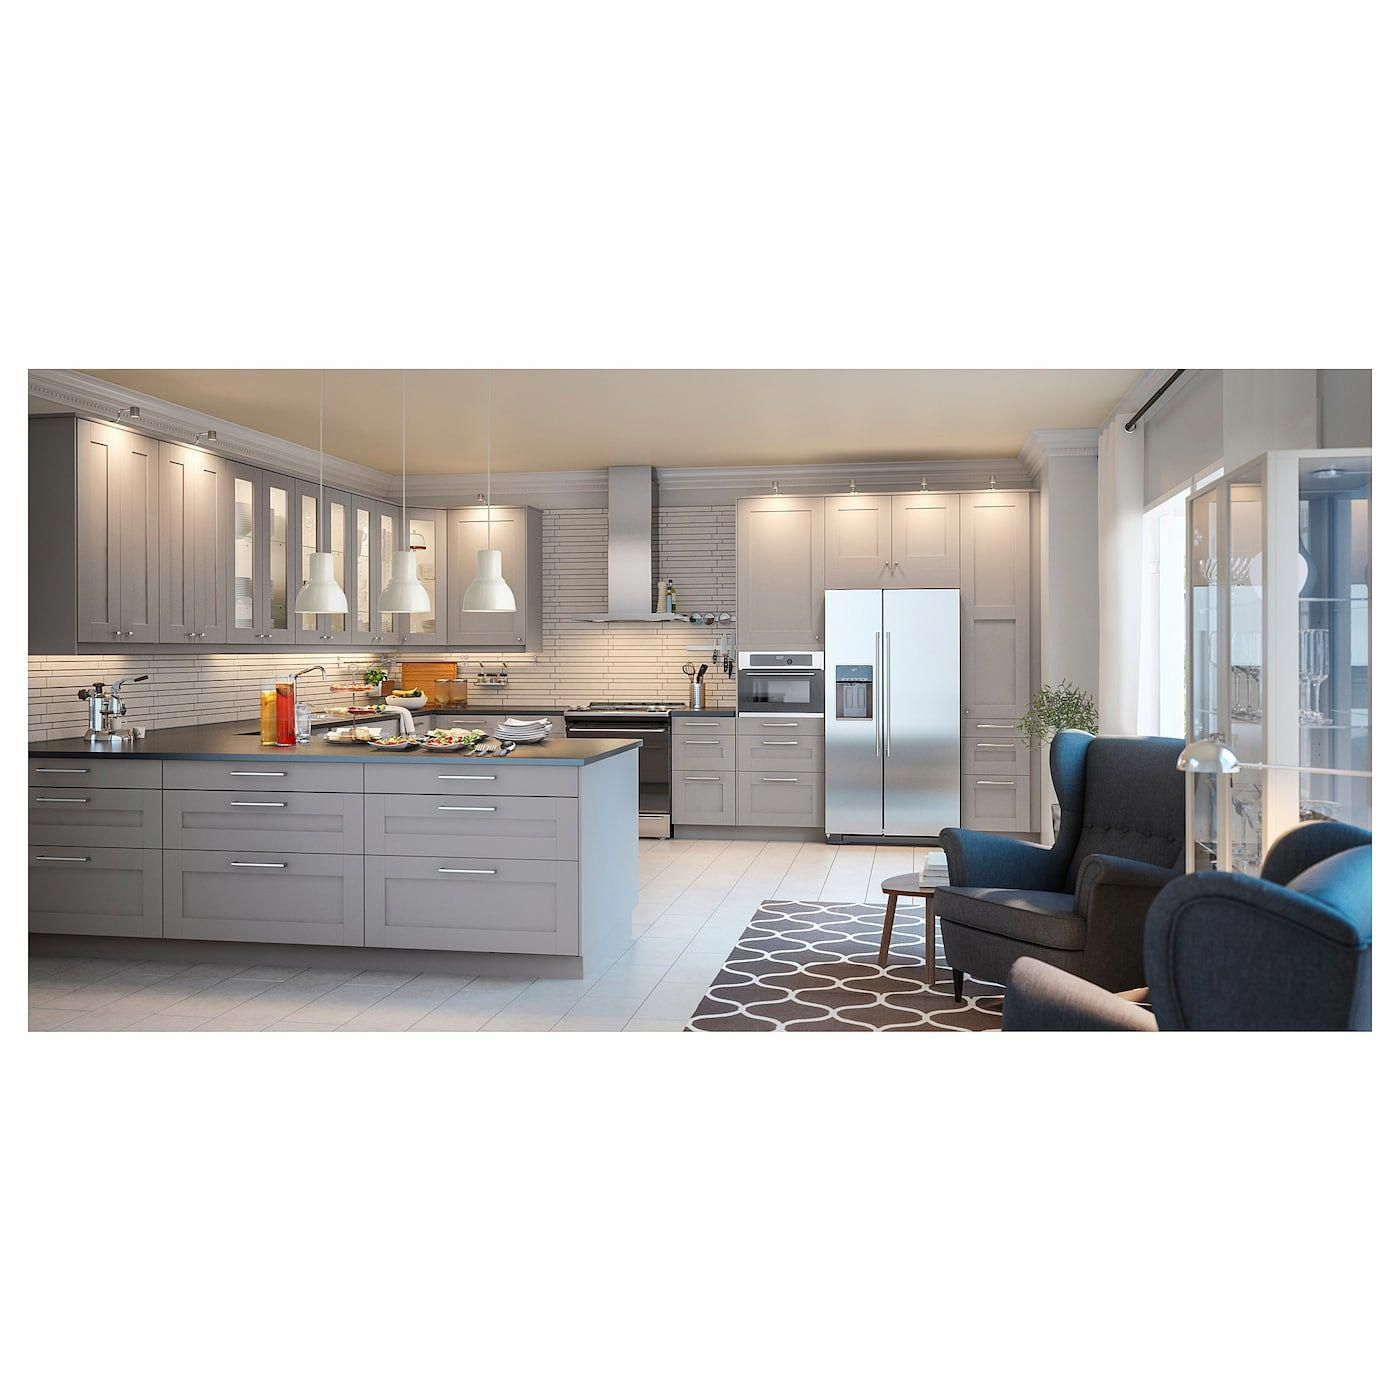 Best Ikea Grimslöv Door Gray Greykitchen In 2020 Kitchen 400 x 300